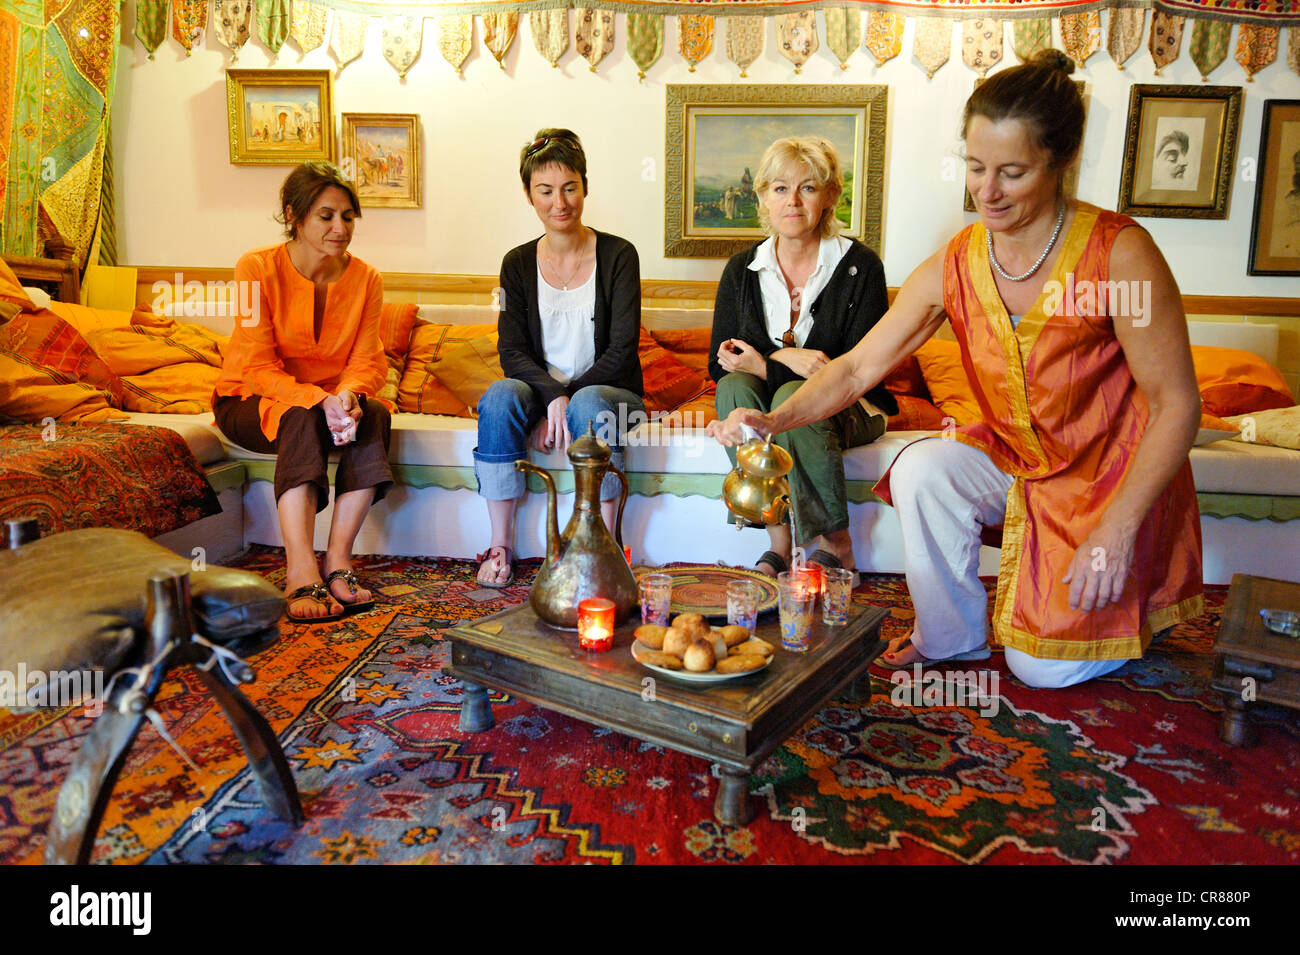 France, Gard, Barjac, Mas Escombelle, tasting homemade pastries accompanied by tea after the massage - Stock Image